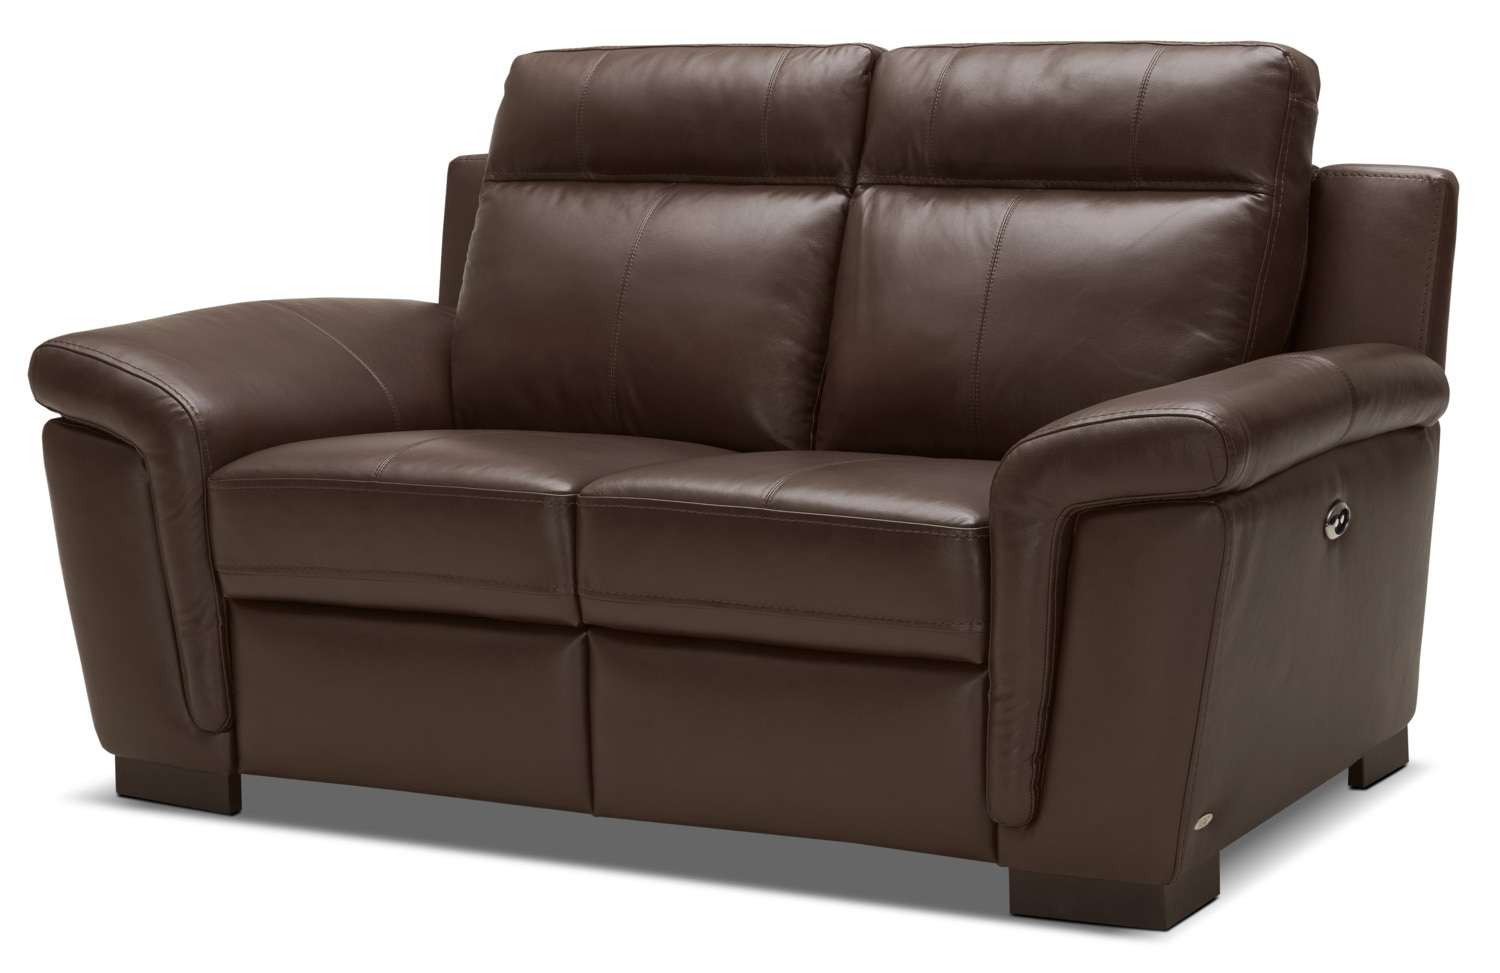 Seth genuine leather power reclining loveseat mahogany Power reclining sofas and loveseats